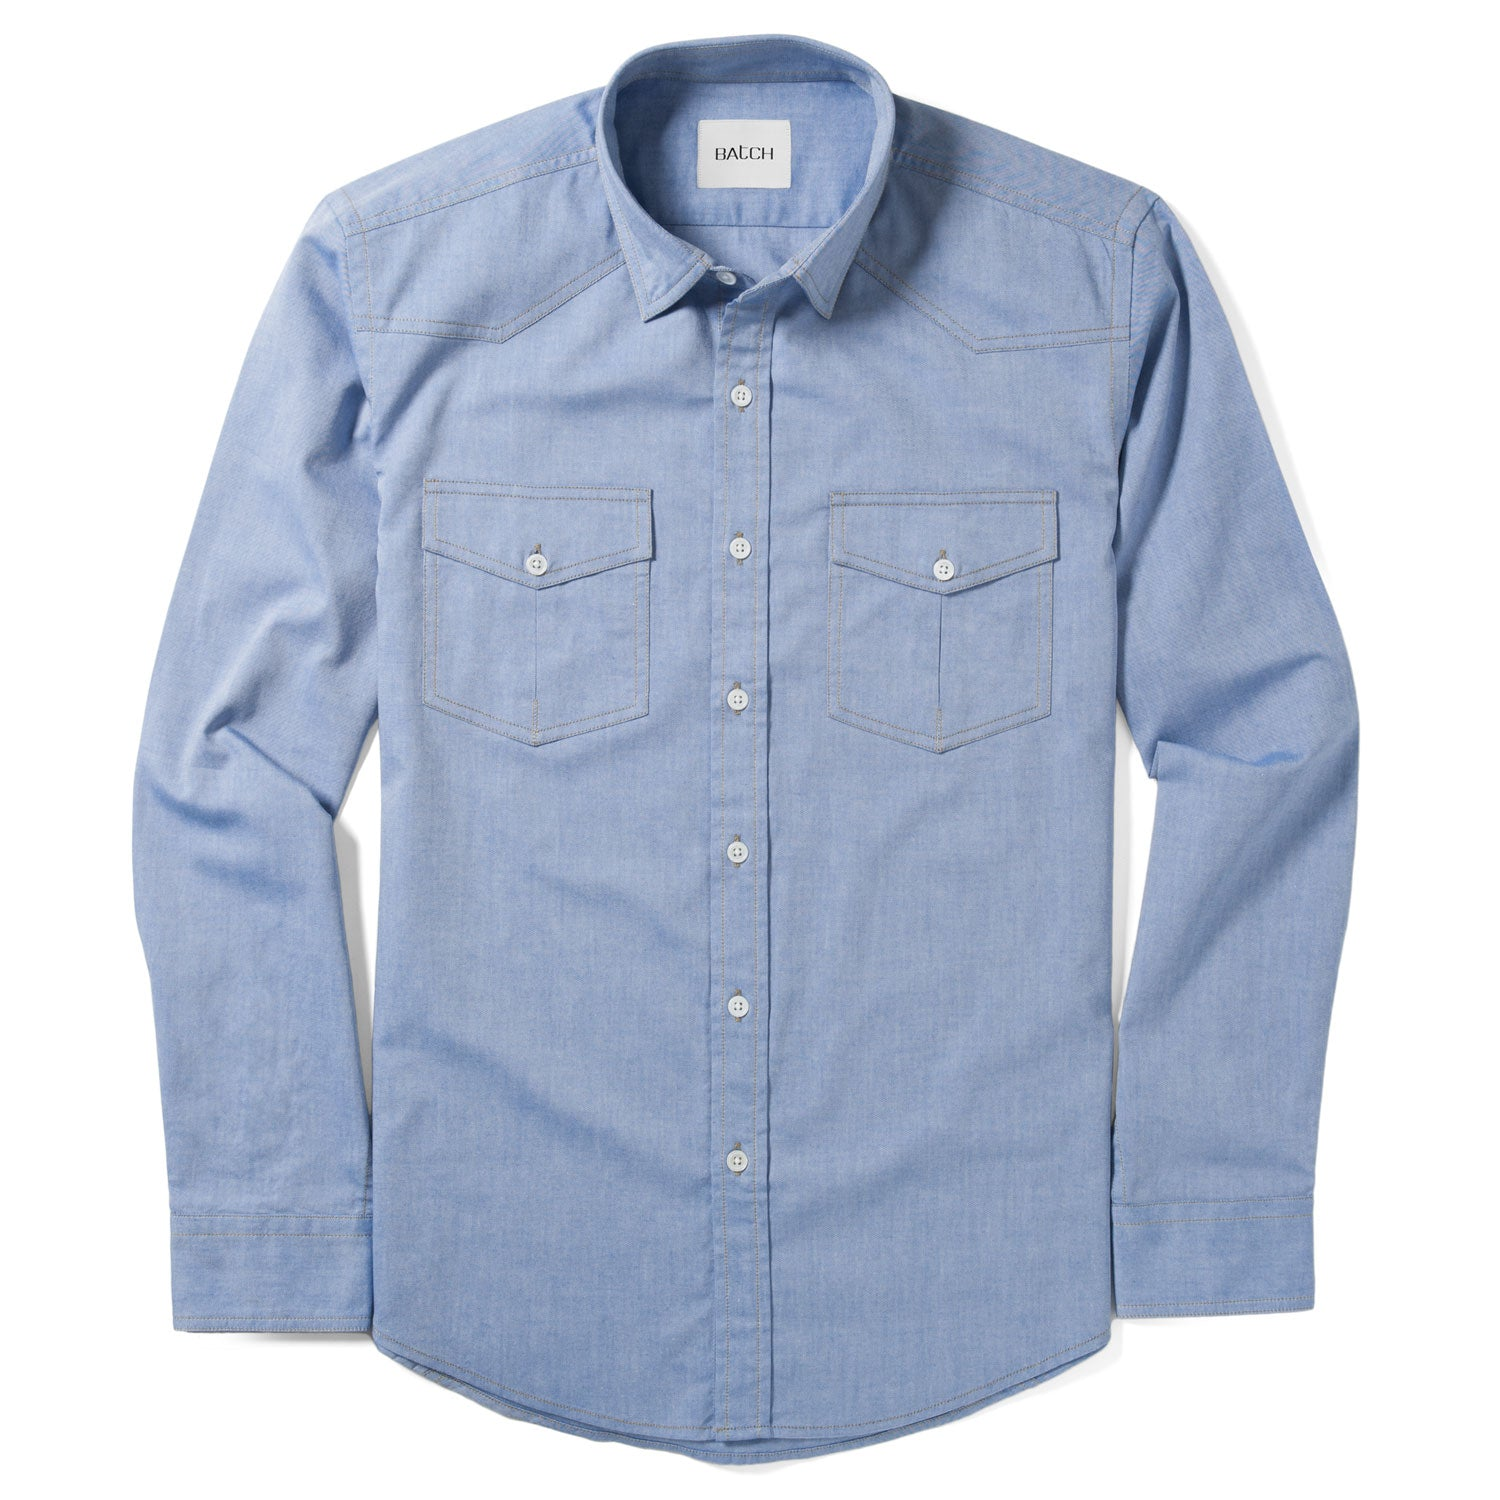 Maker Work Shirt – Classic Blue Cotton Oxford